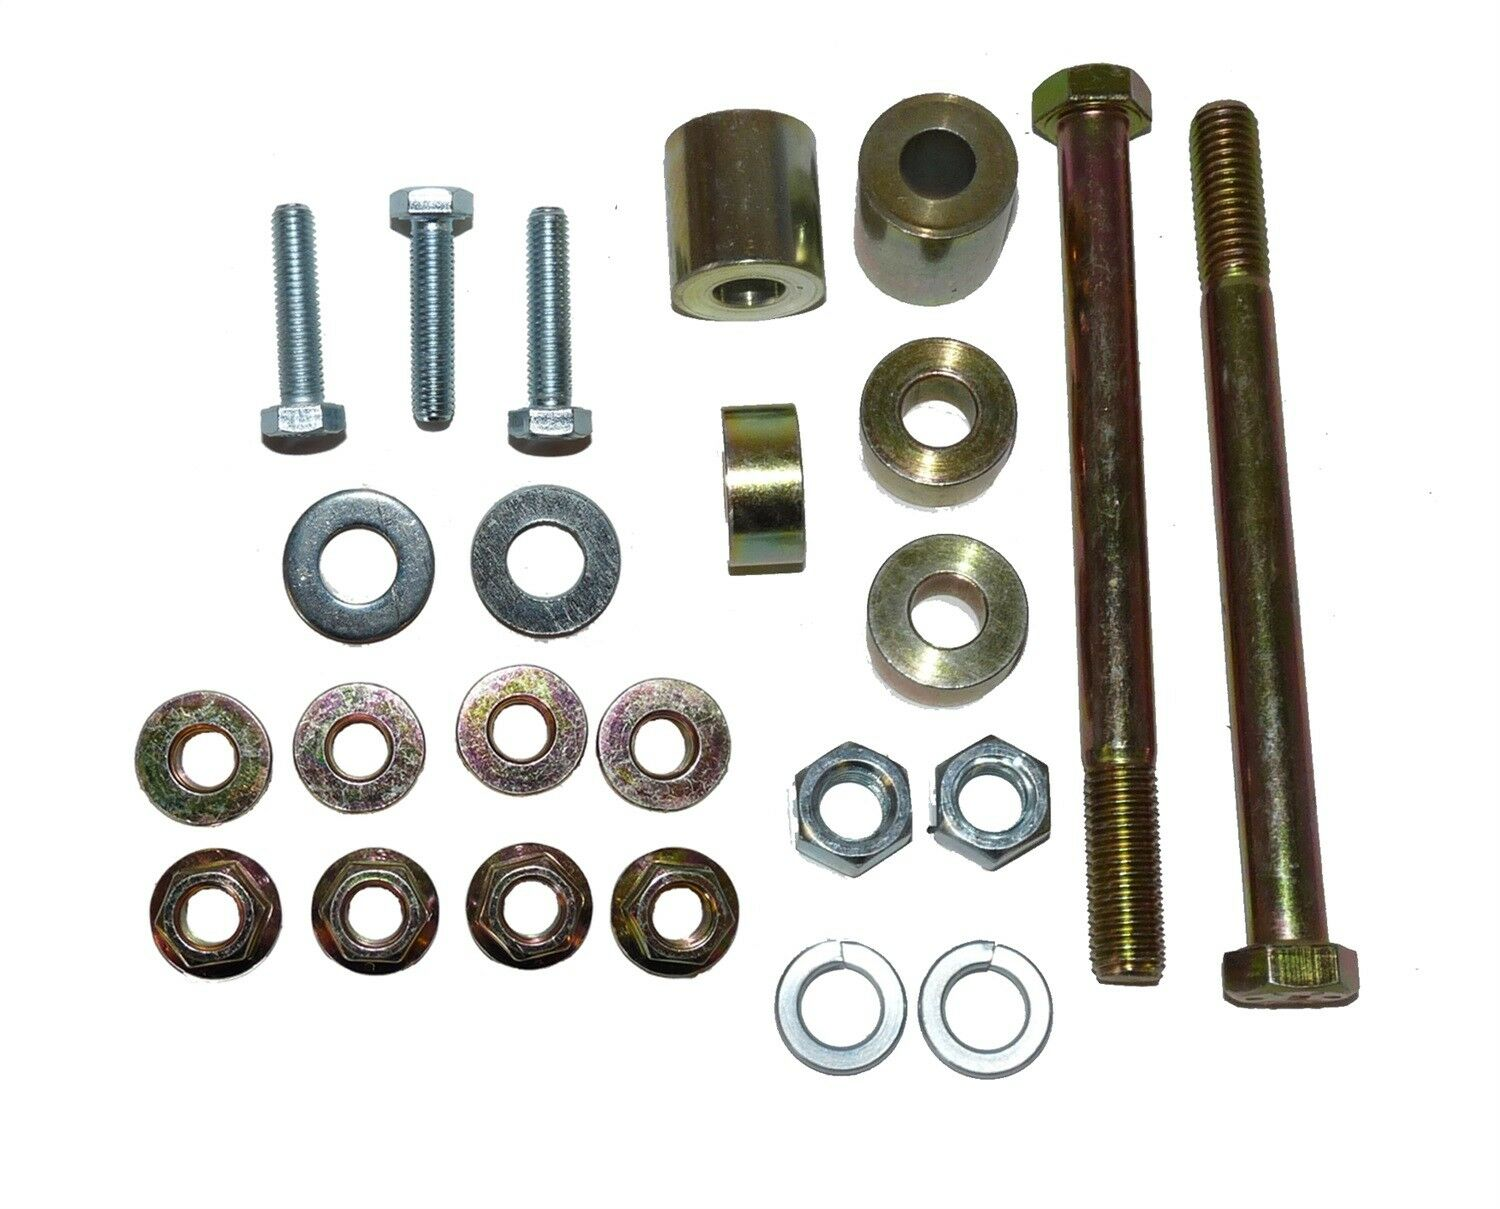 Truxxx 900025 Front Differential Drop Spacer Kit Compatible with 2007-2020 Toyota Tundra